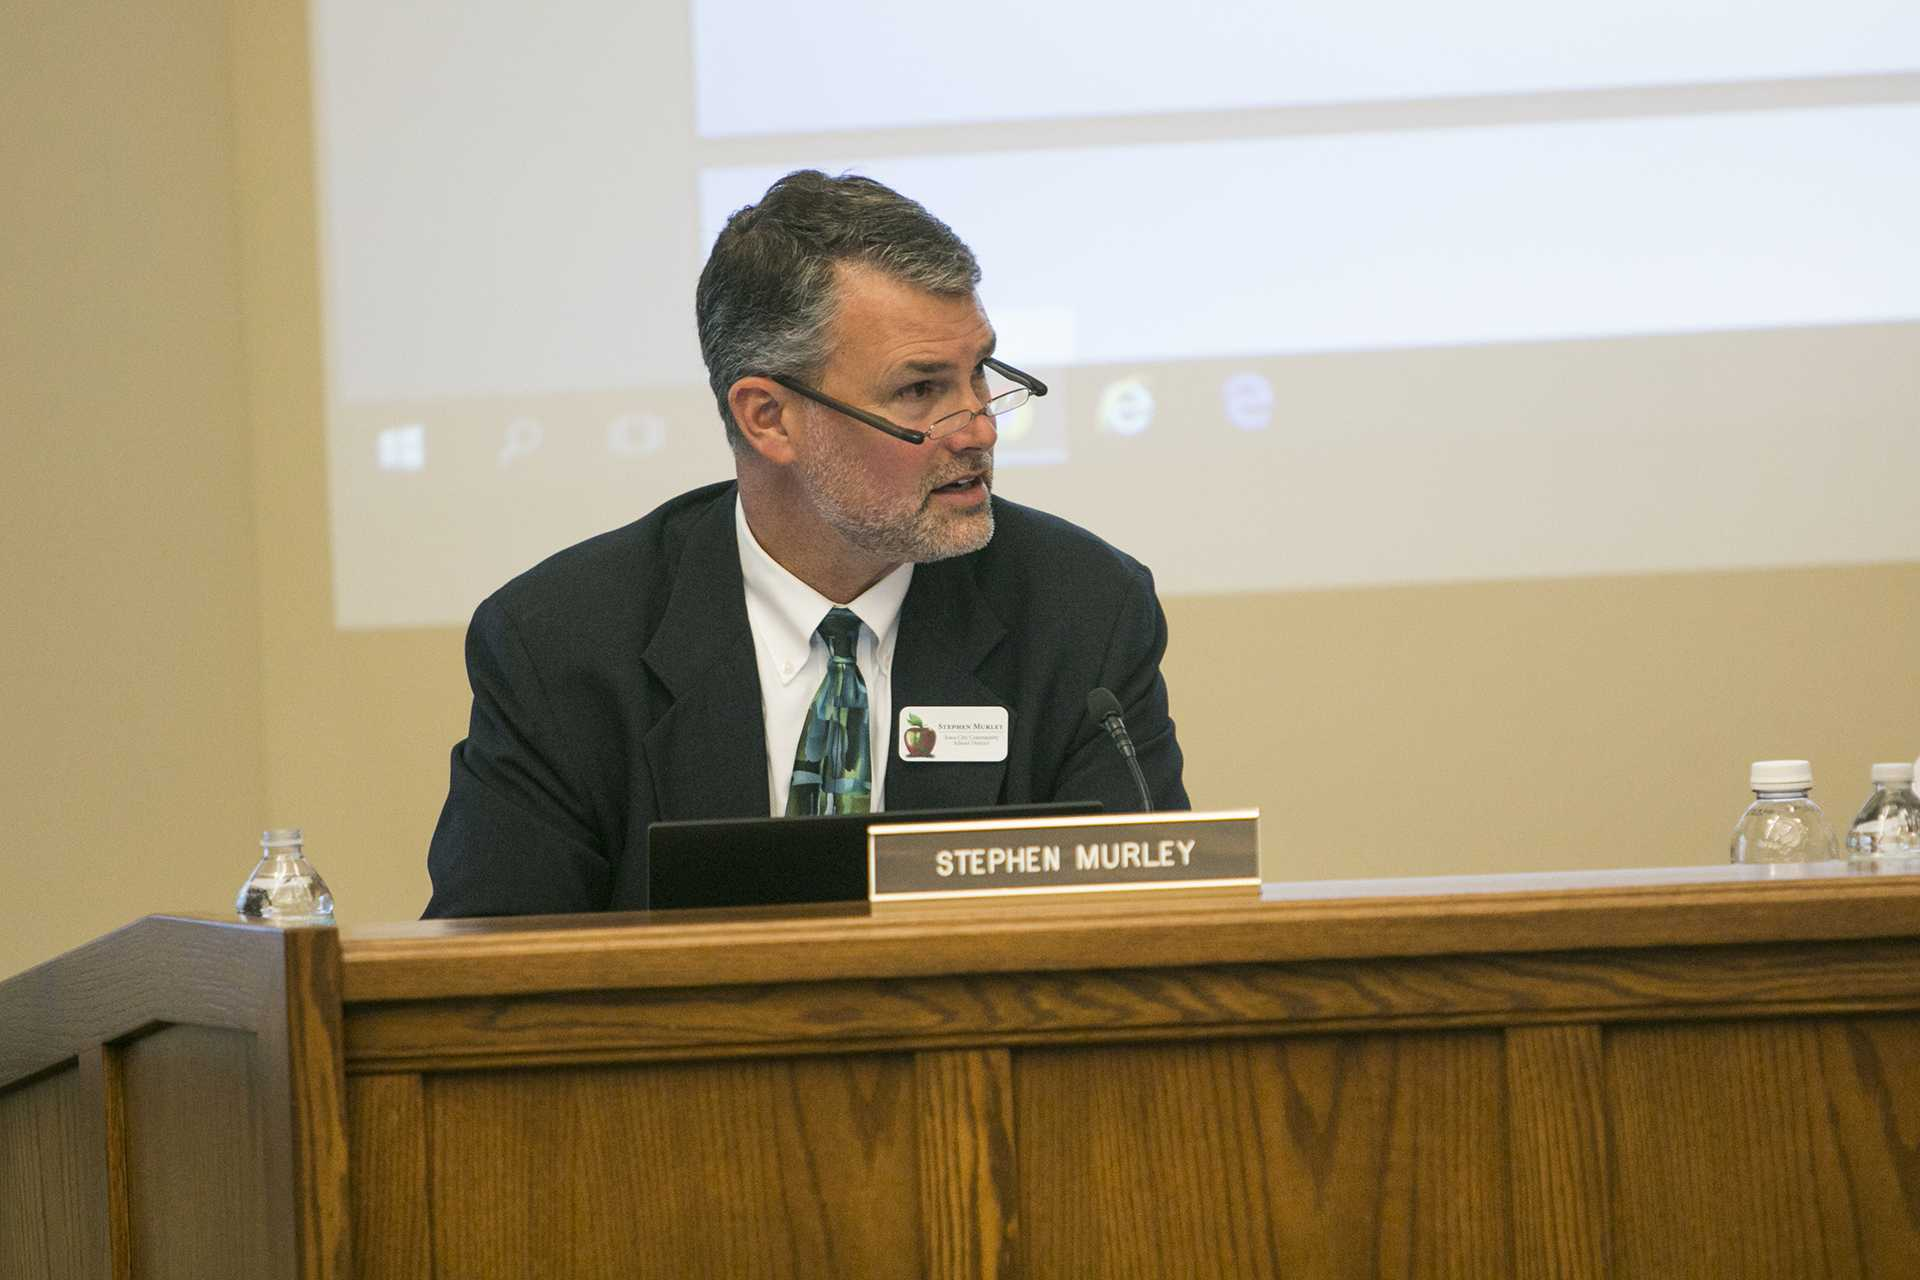 School District President Stephen Murley speaks during a School Board meeting. (Joseph Cress/The Daily Iowan)